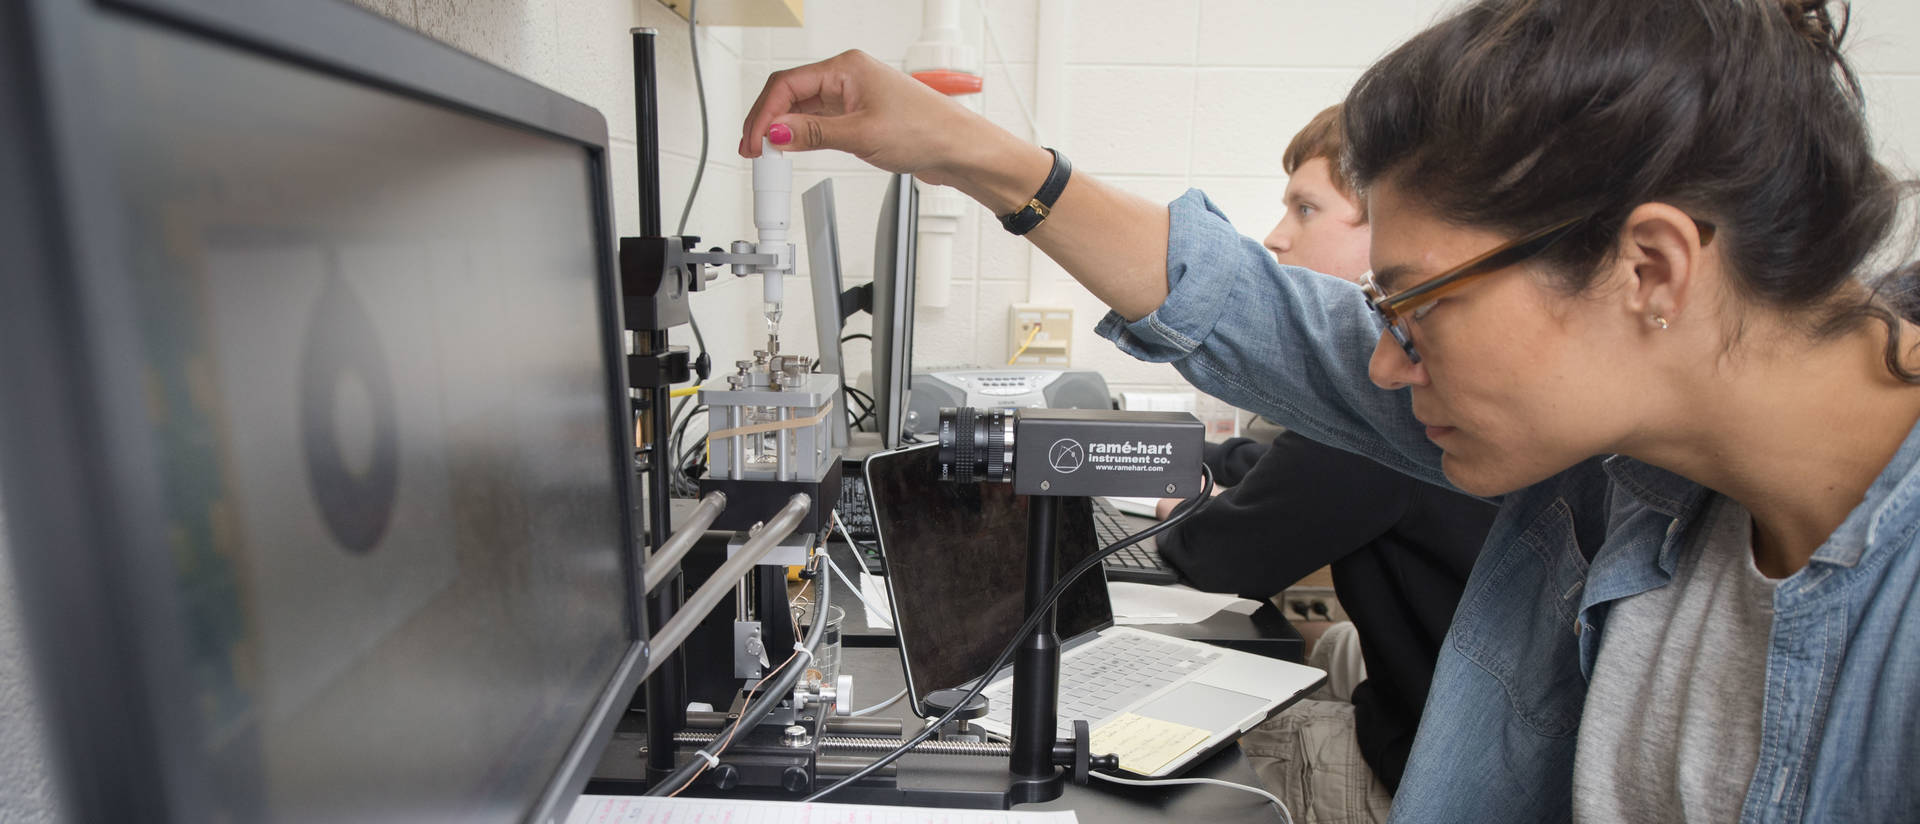 UW-Eau Claire materials science student at work